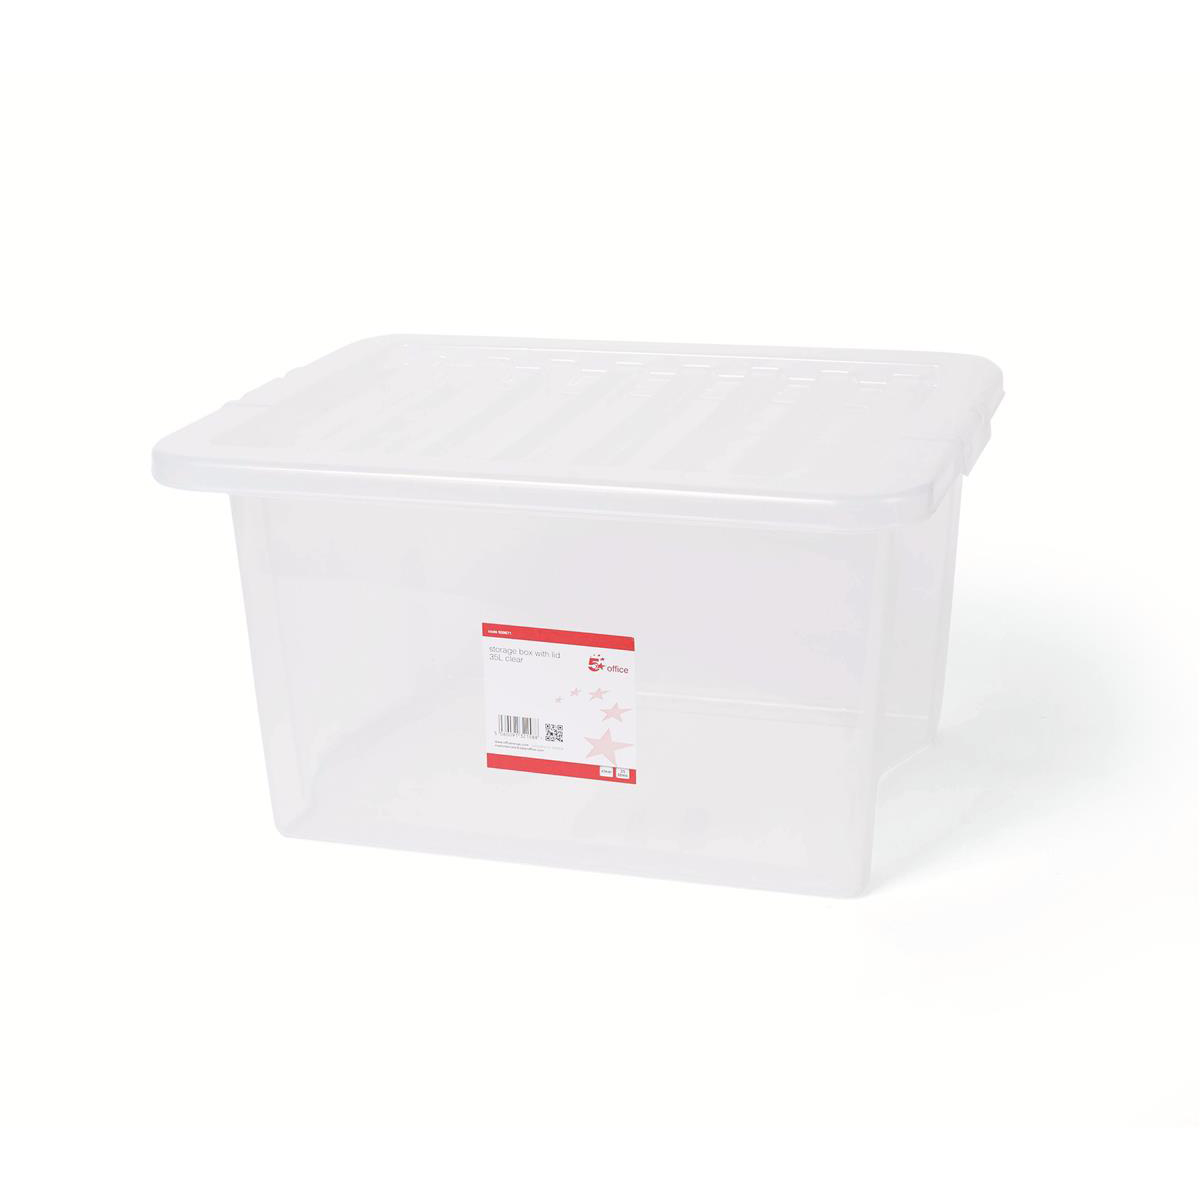 Tool Boxes 5 Star Office Storage Box Plastic with Lid Stackable 35 Litre Clear